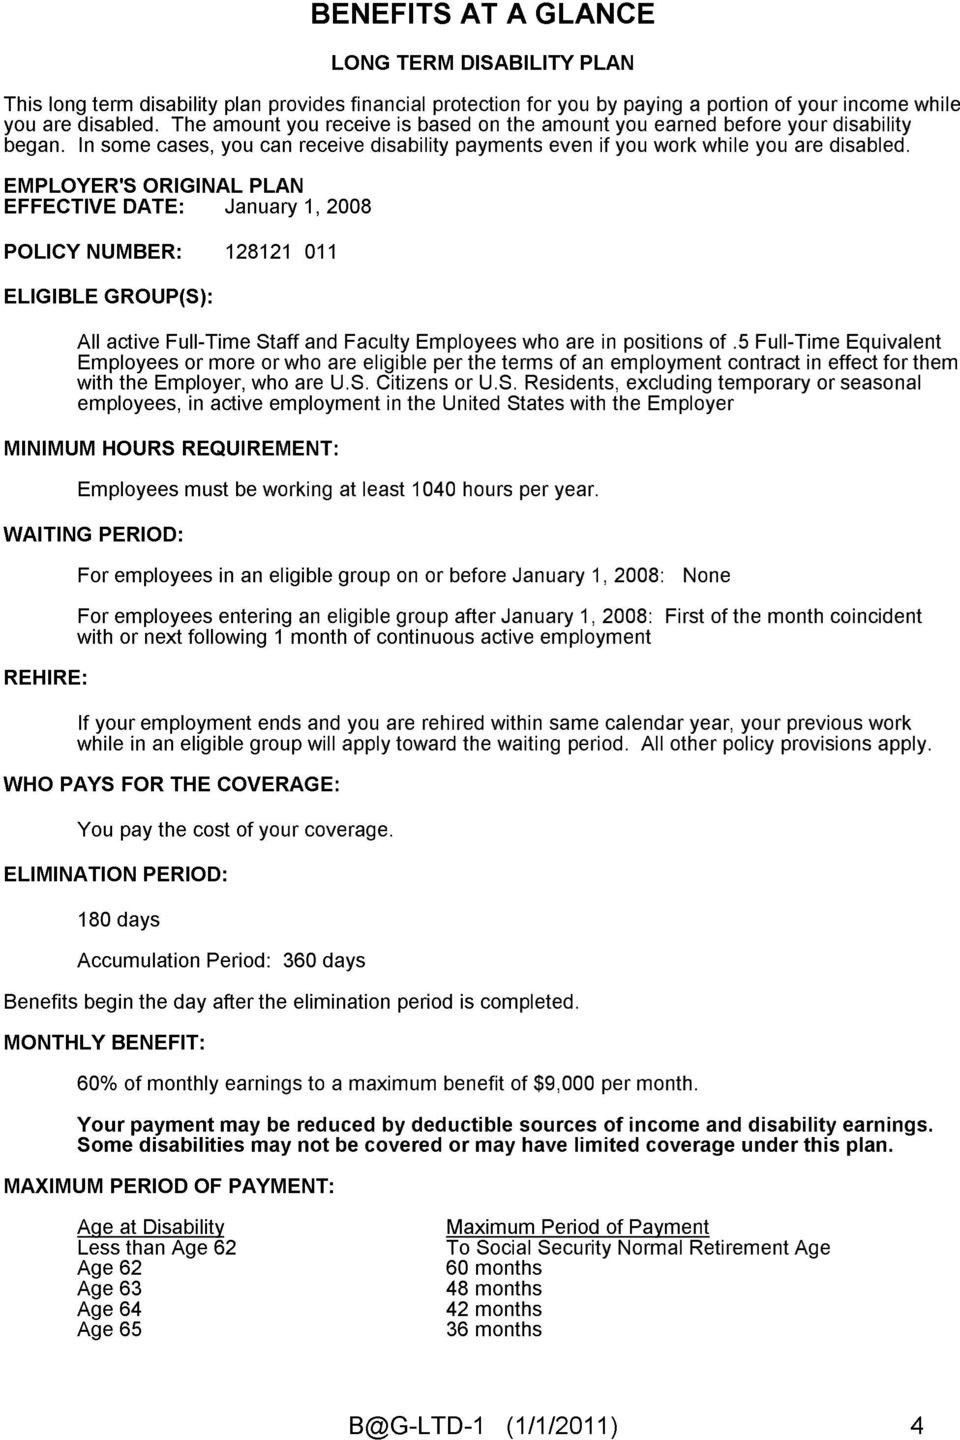 EMPLOYER'S ORIGINAL PLAN EFFECTIVE DATE: January 1, 2008 POLICY NUMBER: 128121 011 ELIGIBLE GROUP(S): All active Full-Time Staff and Faculty Employees who are in positions of.